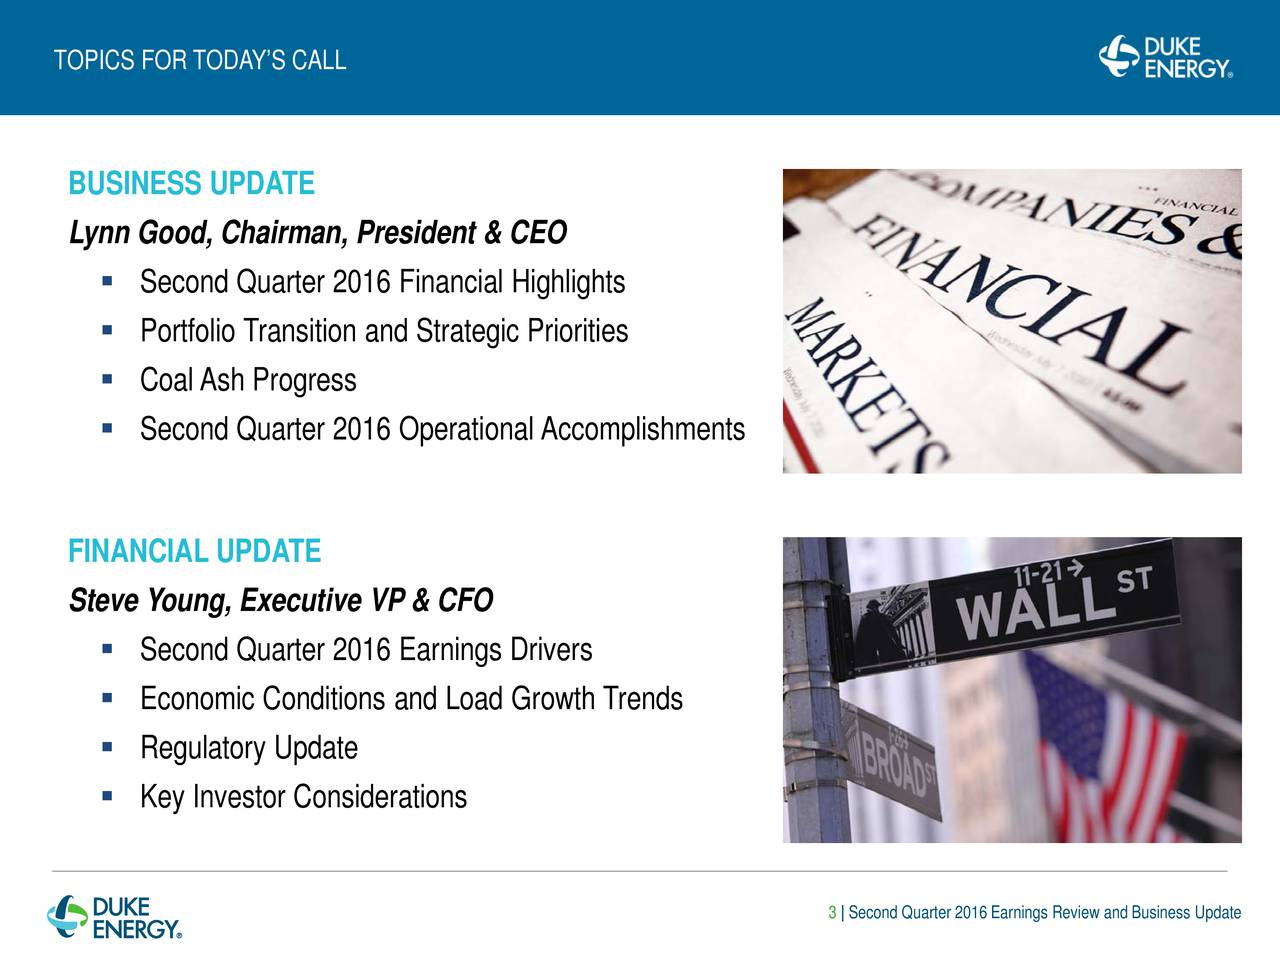 BUSINESS UPDATE Lynn Good, Chairman, President & CEO Second Quarter 2016 Financial Highlights Portfolio Transition and Strategic Priorities Coal Ash Progress Second Quarter 2016 Operational Accomplishments FINANCIAL UPDATE Steve Young, Executive VP & CFO Second Quarter 2016 Earnings Drivers Economic Conditions and Load Growth Trends Regulatory Update Key Investor Considerations 3 | Second Quarter 2016 Earnings Review and Business Update